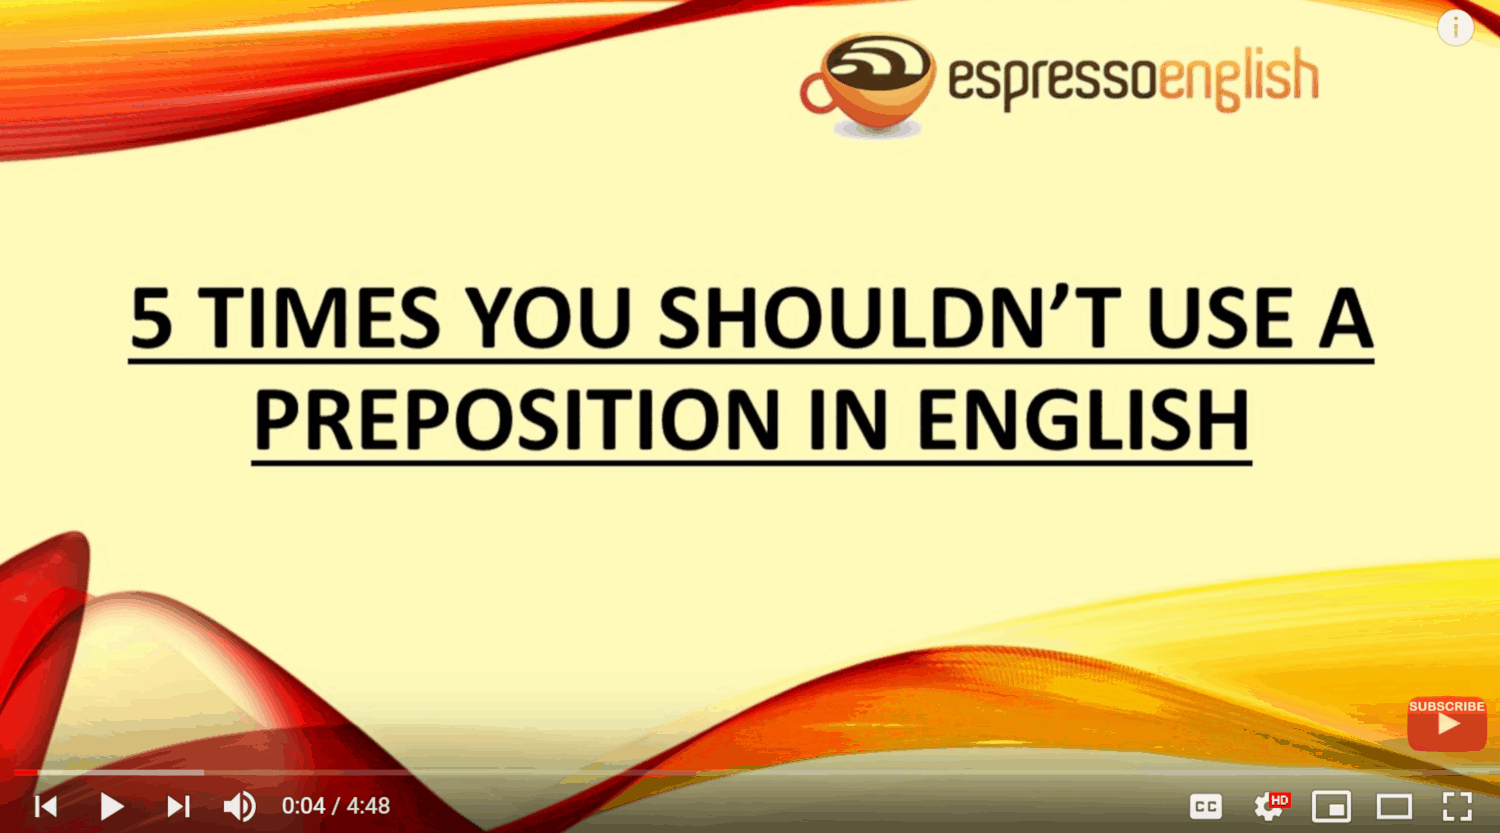 Espresso English Video Sample